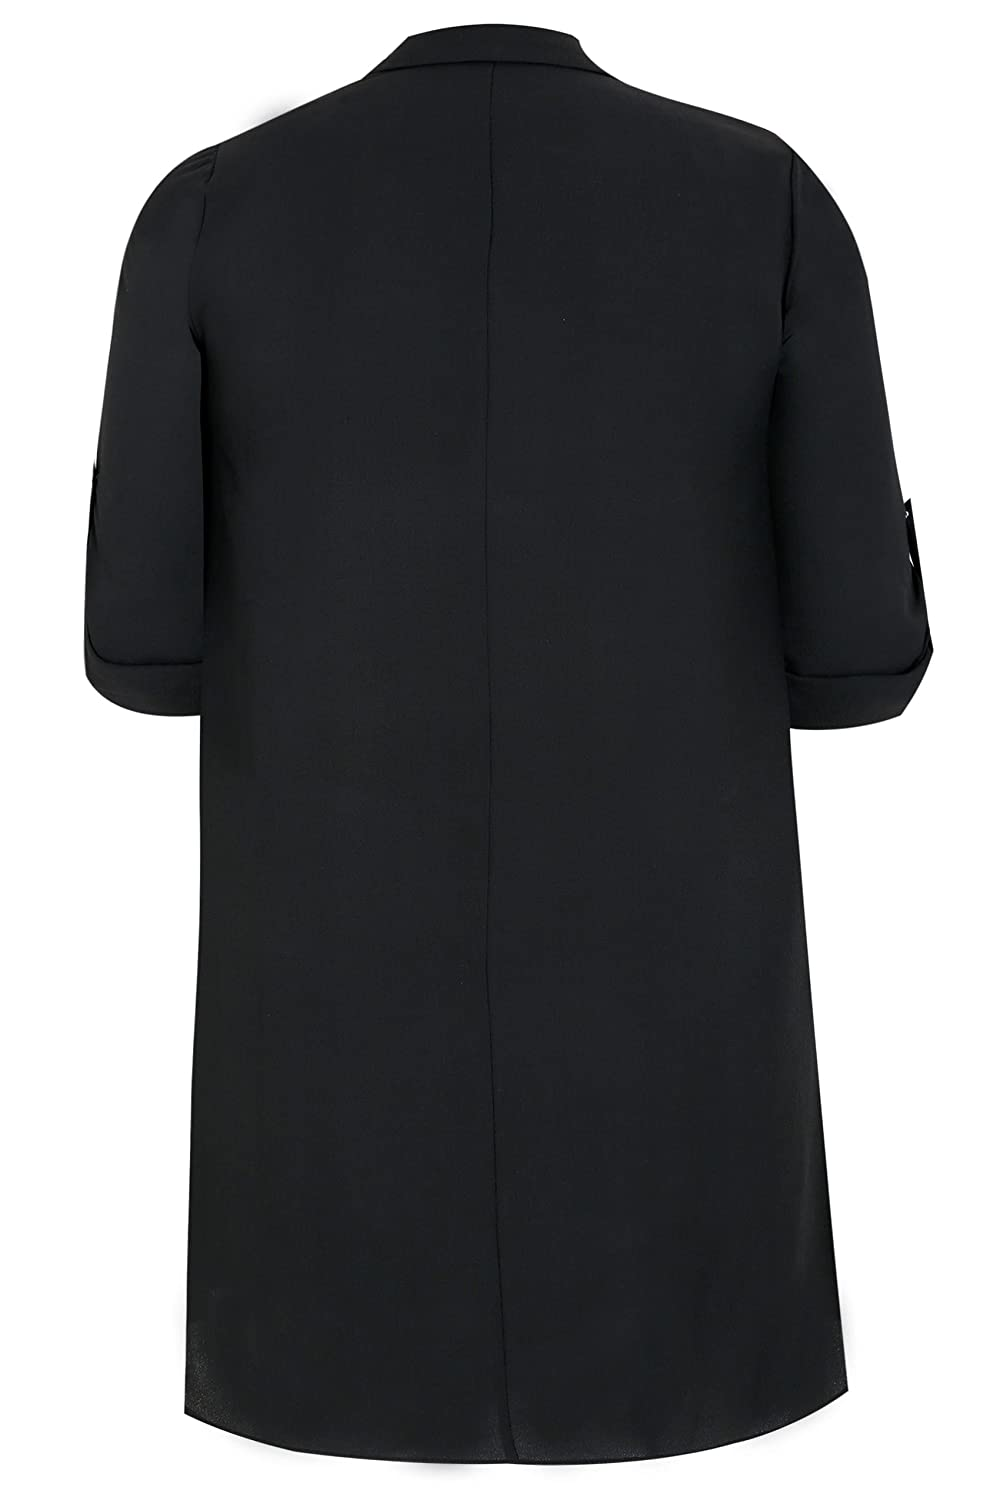 bdc6606bb8000 Yours Clothing Women s Plus Size Lightweight Duster Jacket with Waterfall  Front  Amazon.co.uk  Clothing